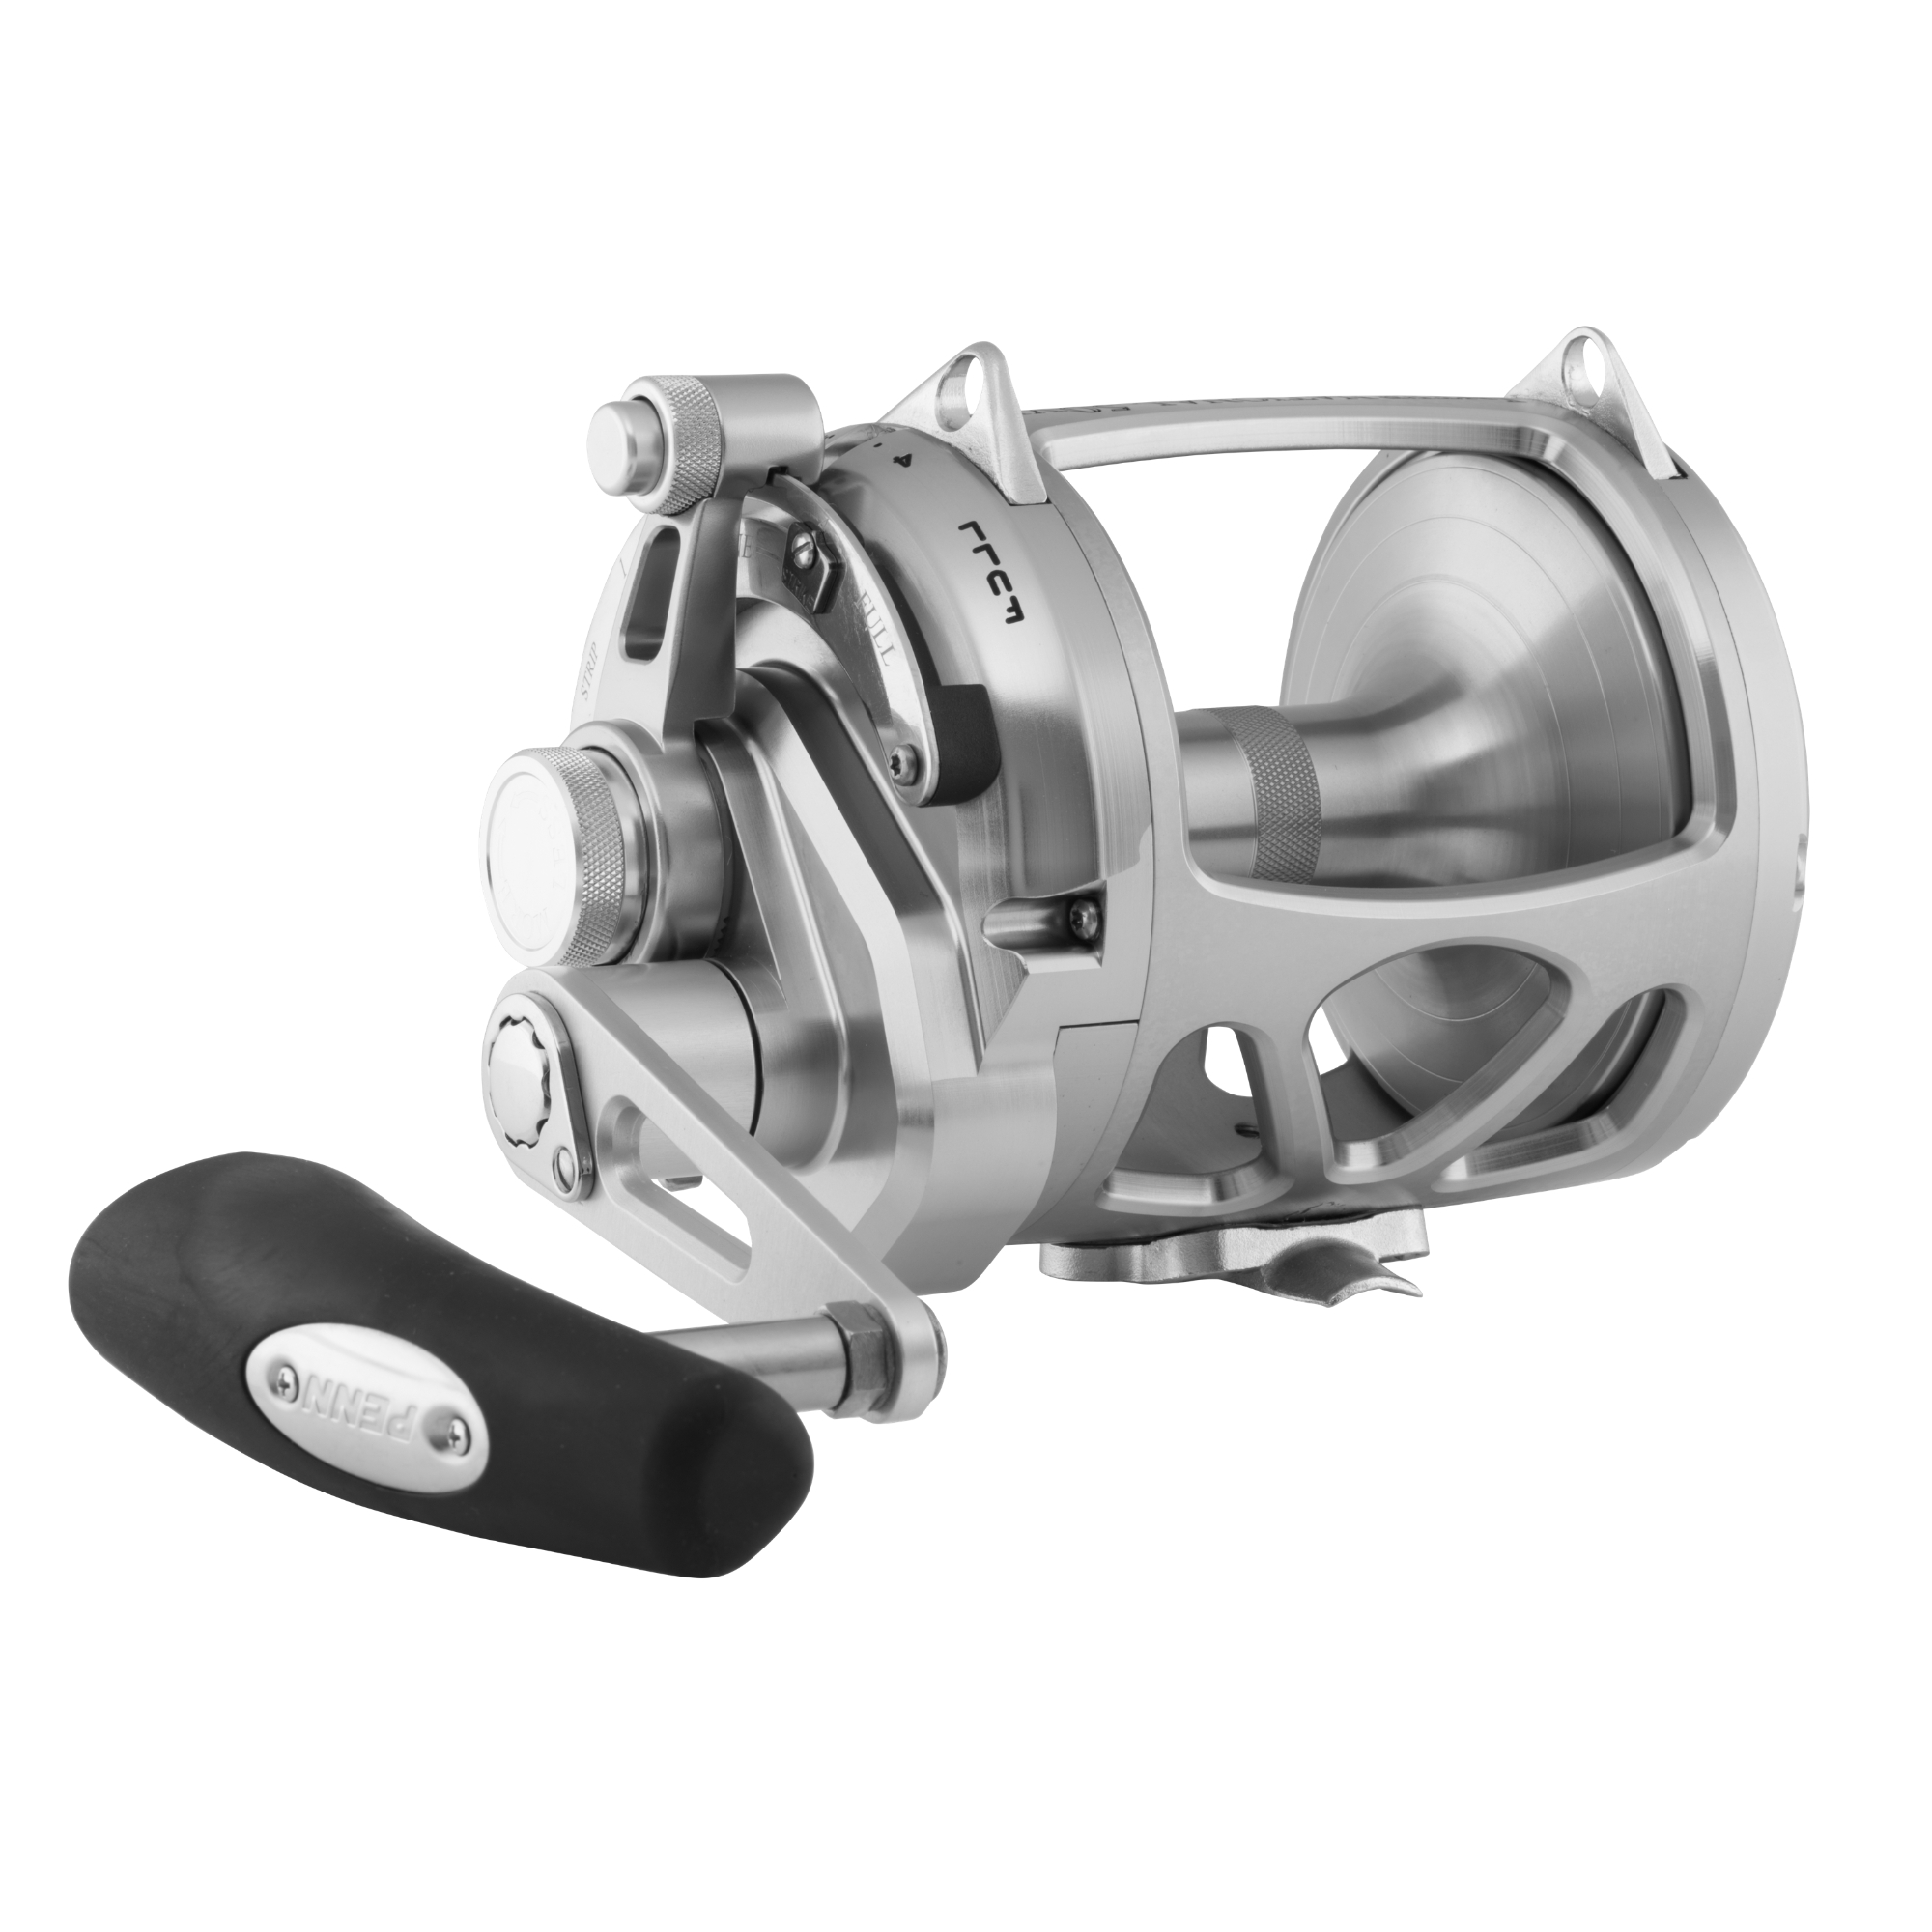 Penn INT50VIWS Silver International VI Reel